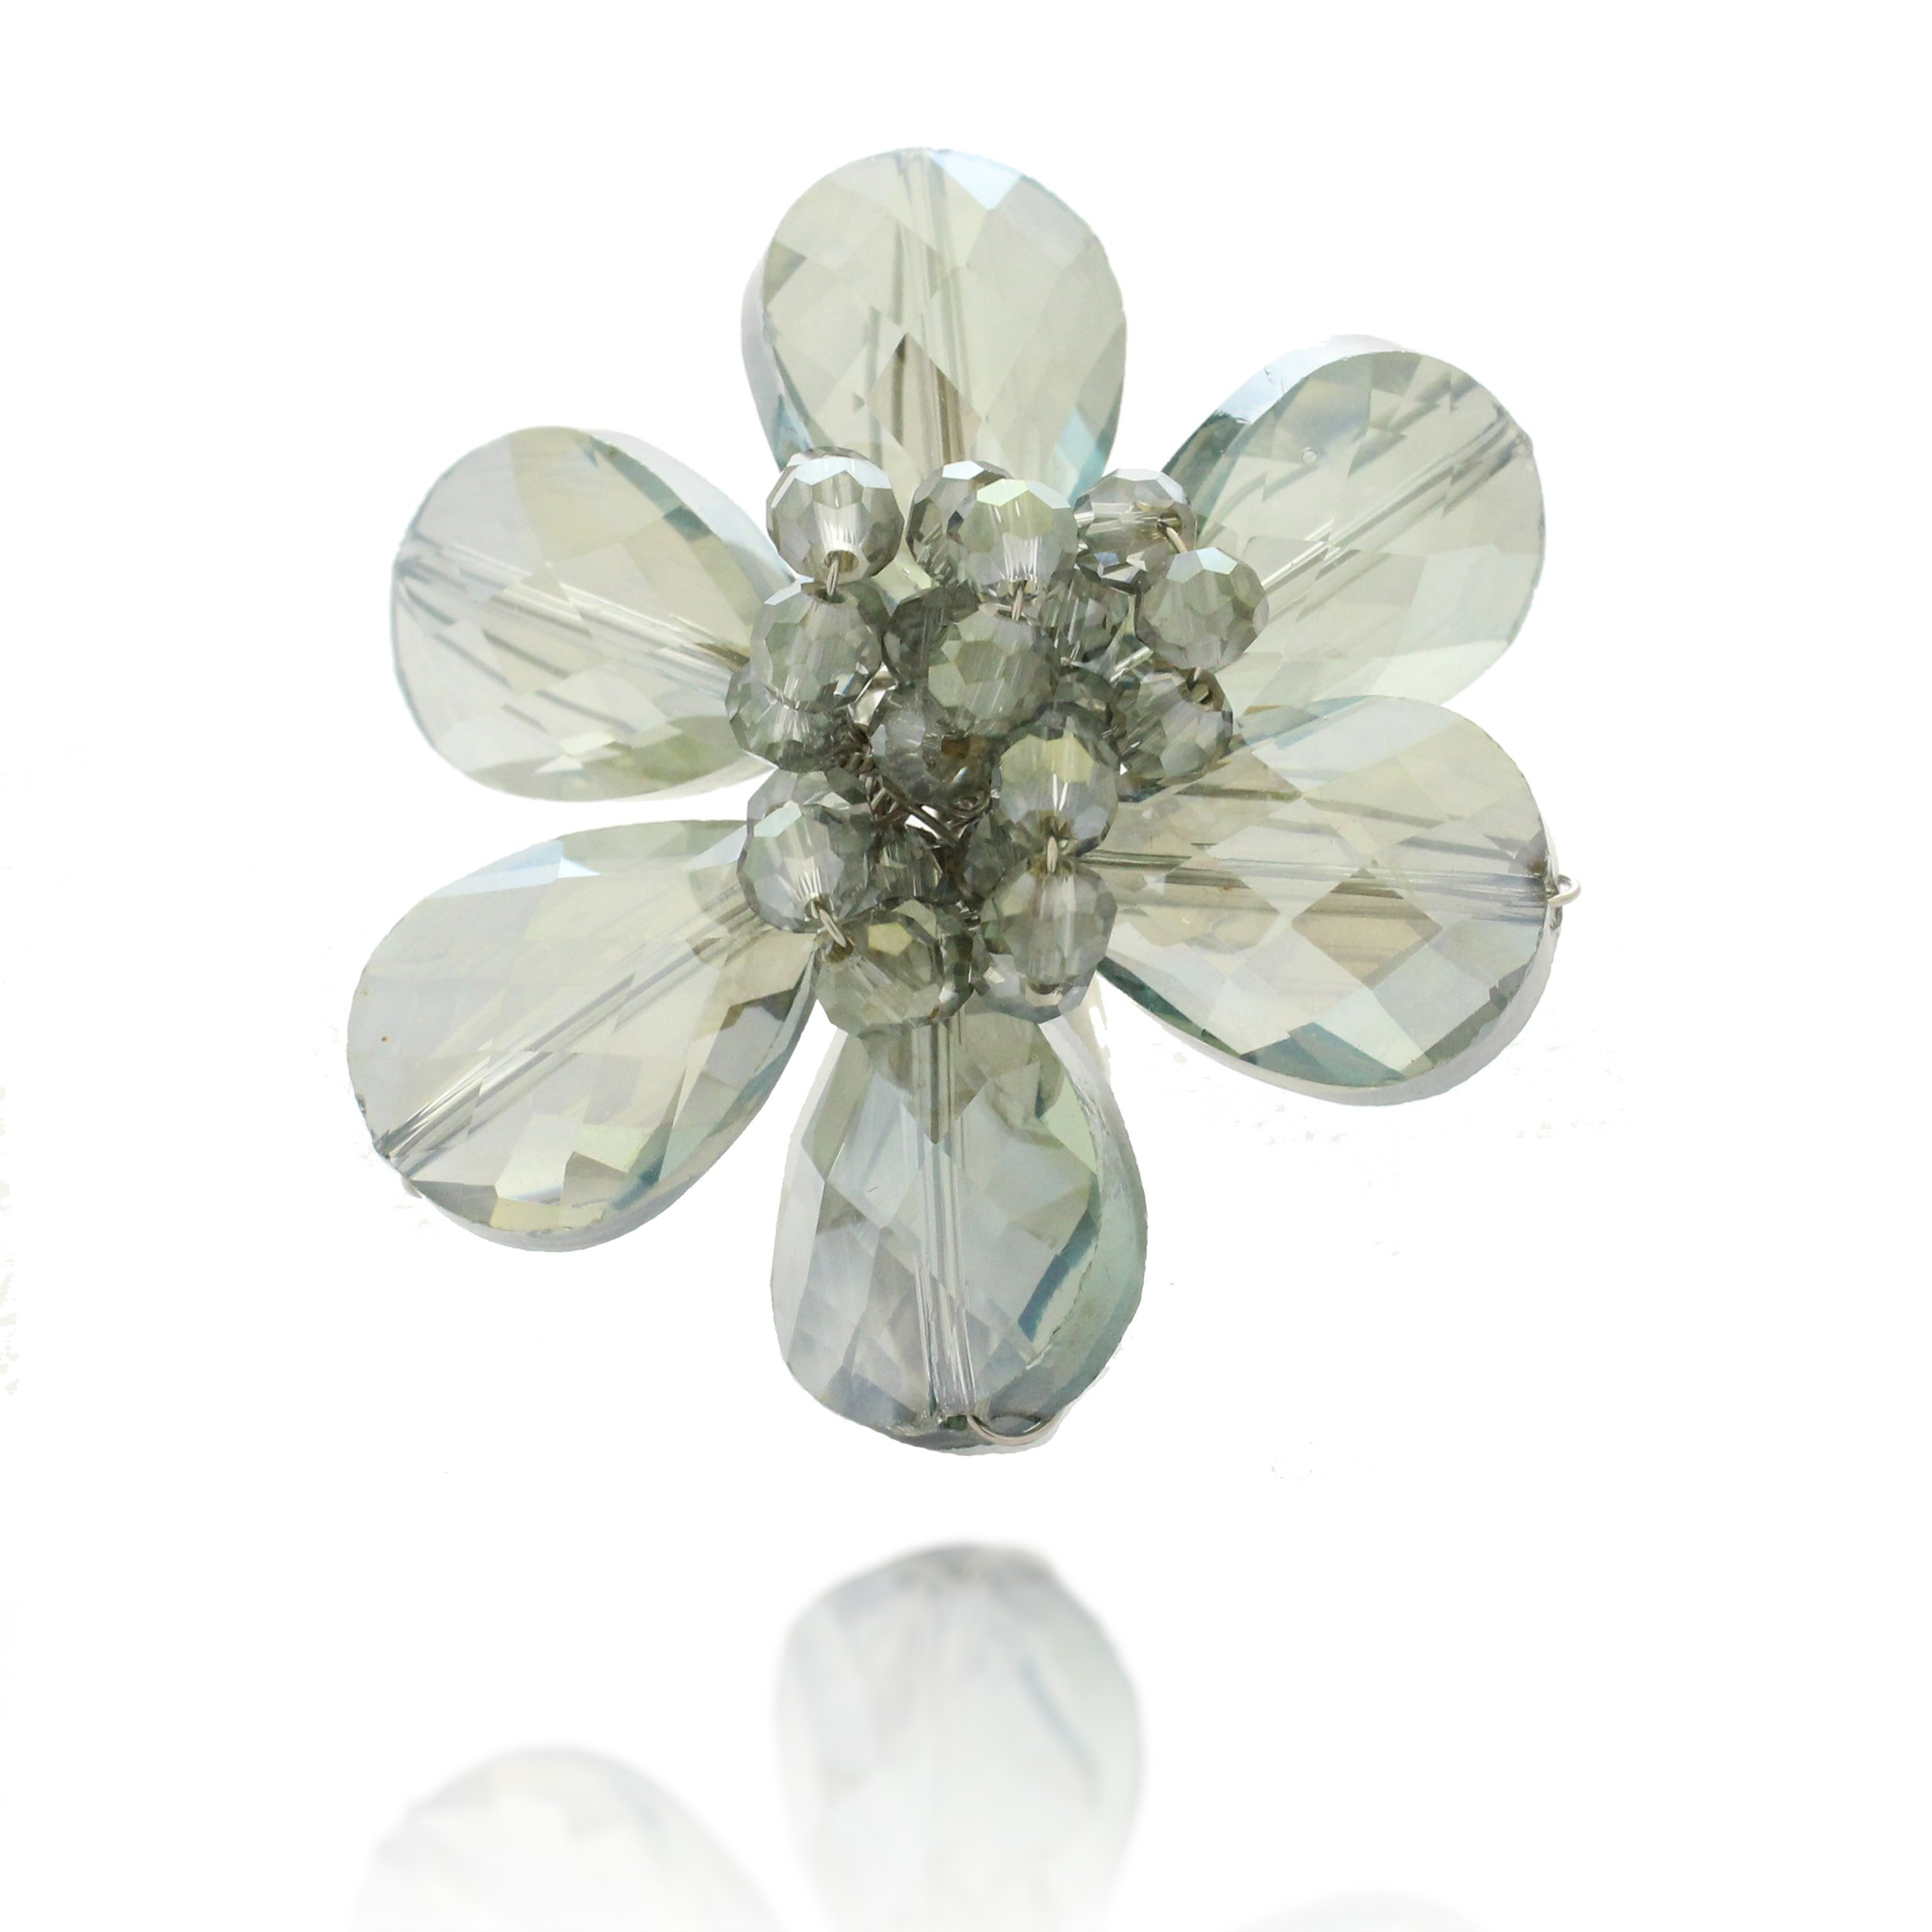 Chuvora Zinc Handwired Gray Crystal Glass Beads Flower Adjustable Ring